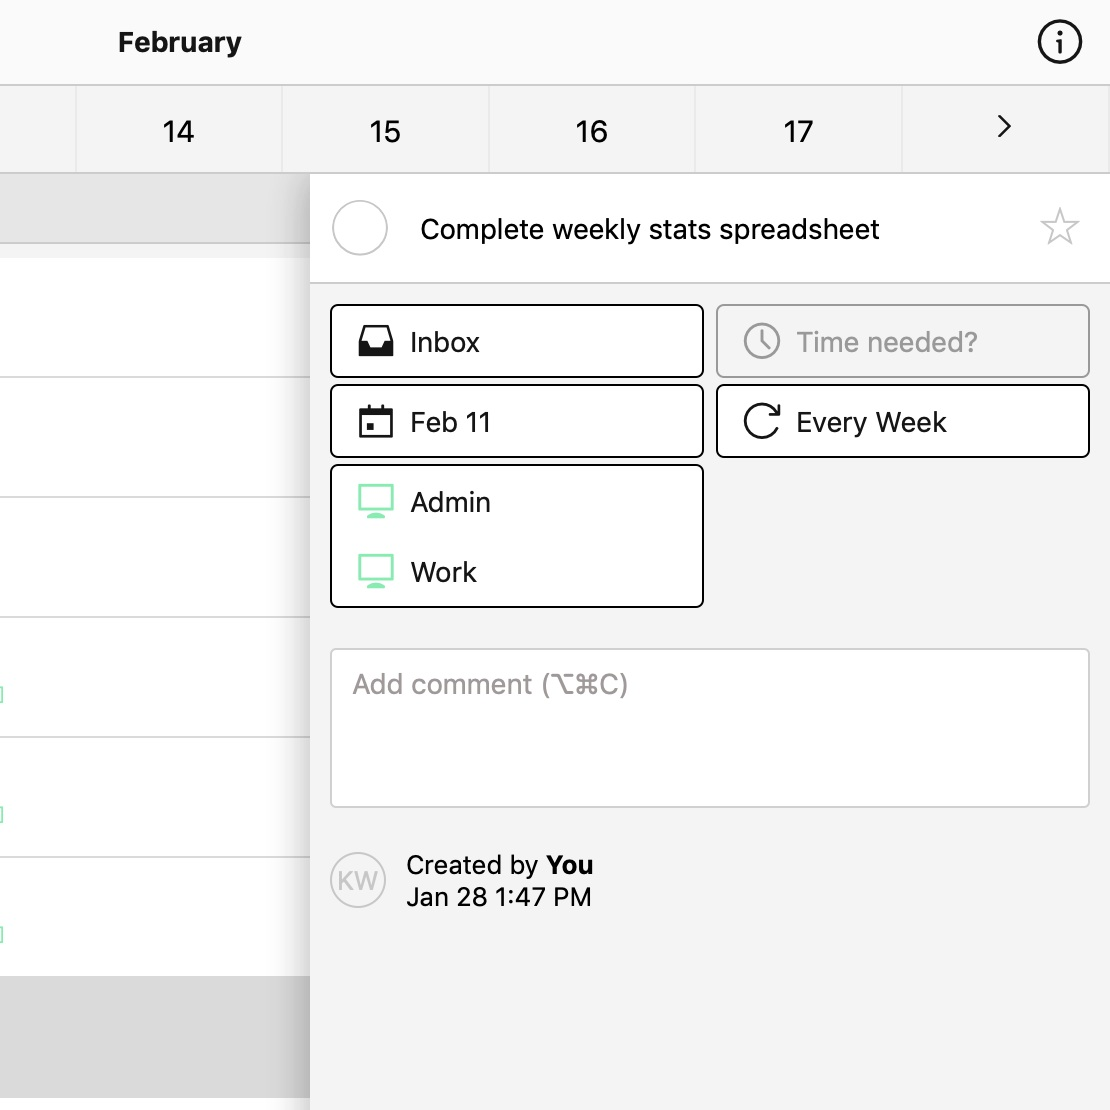 I have a weekly spreadsheet with different stats that I track in my business. This is the task in Nozbe that reminds me to update that spreadsheet every Monday.